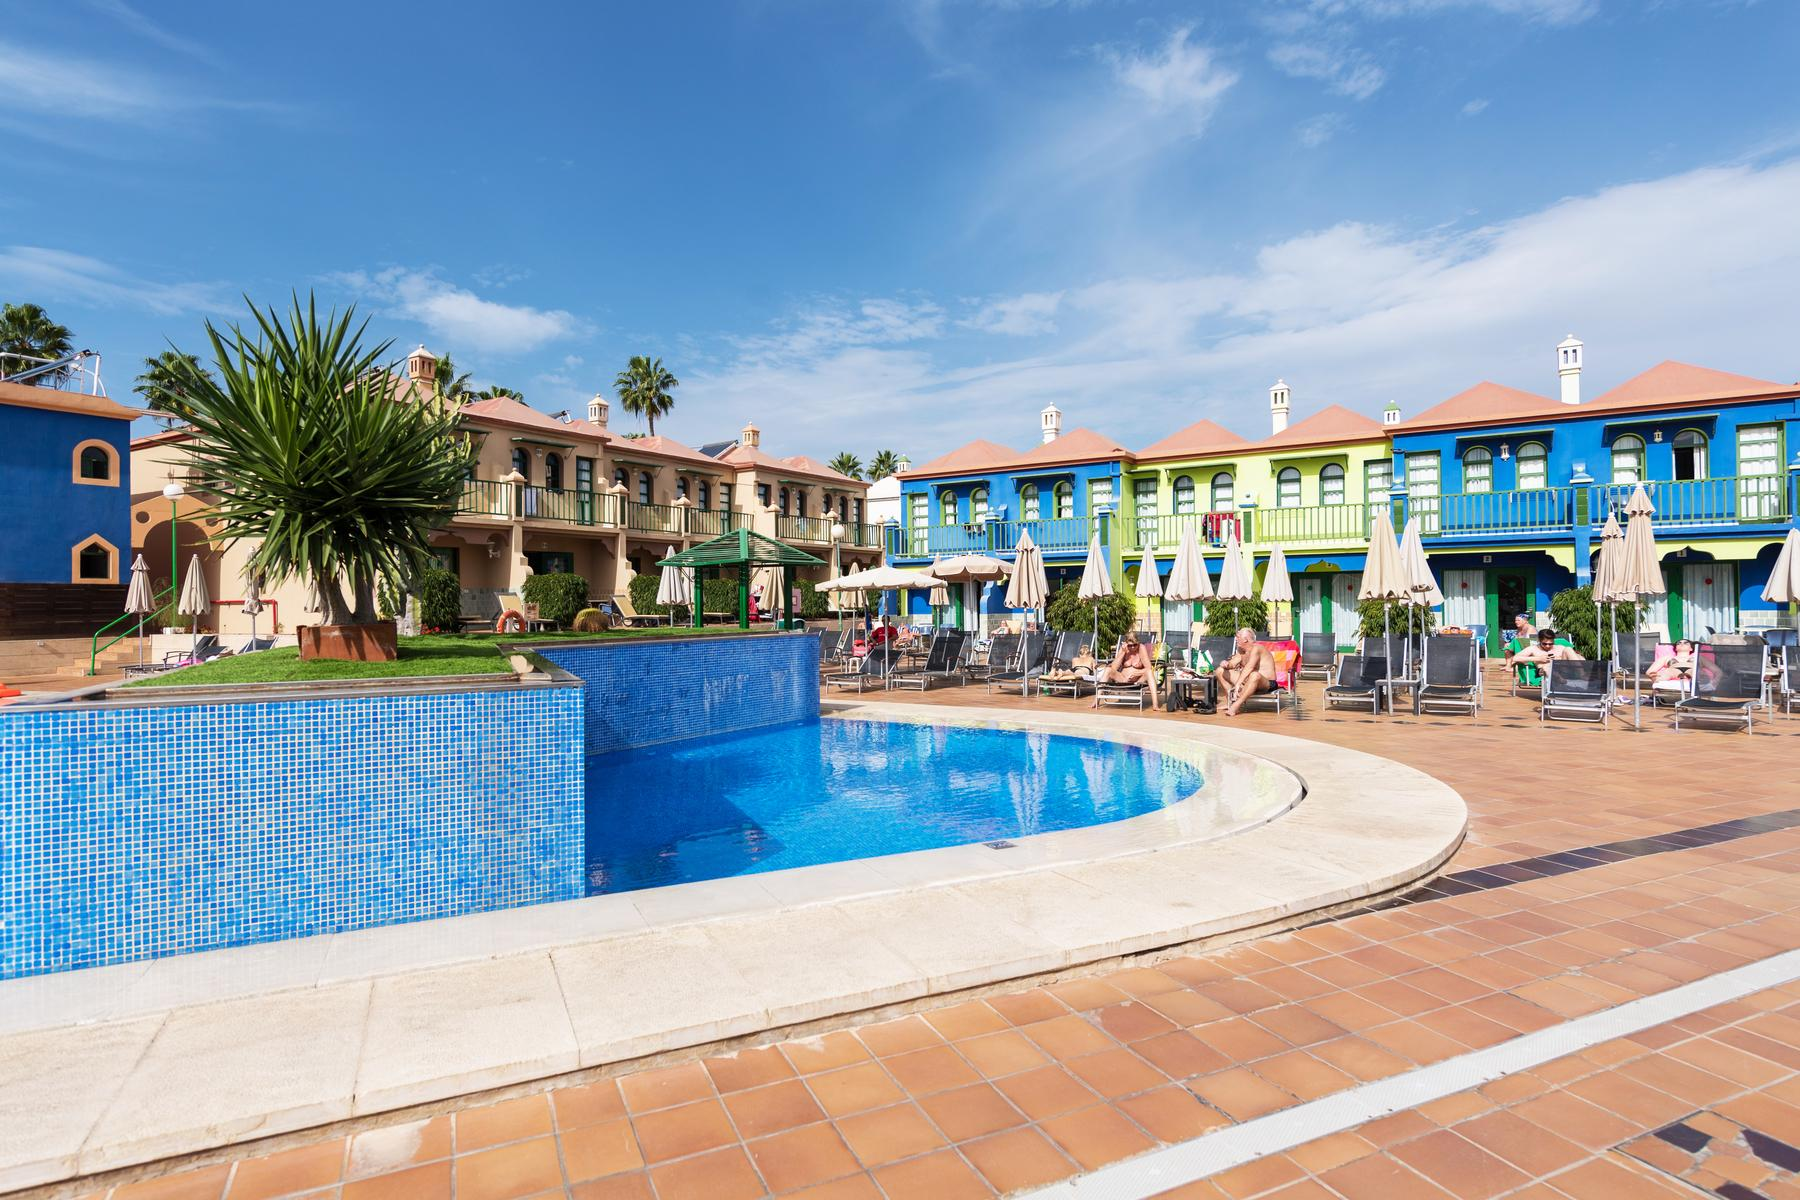 Eo Maspalomas resort (EX Club Vista Flor) in Maspalomas, Gran Canaria, Canary Islands